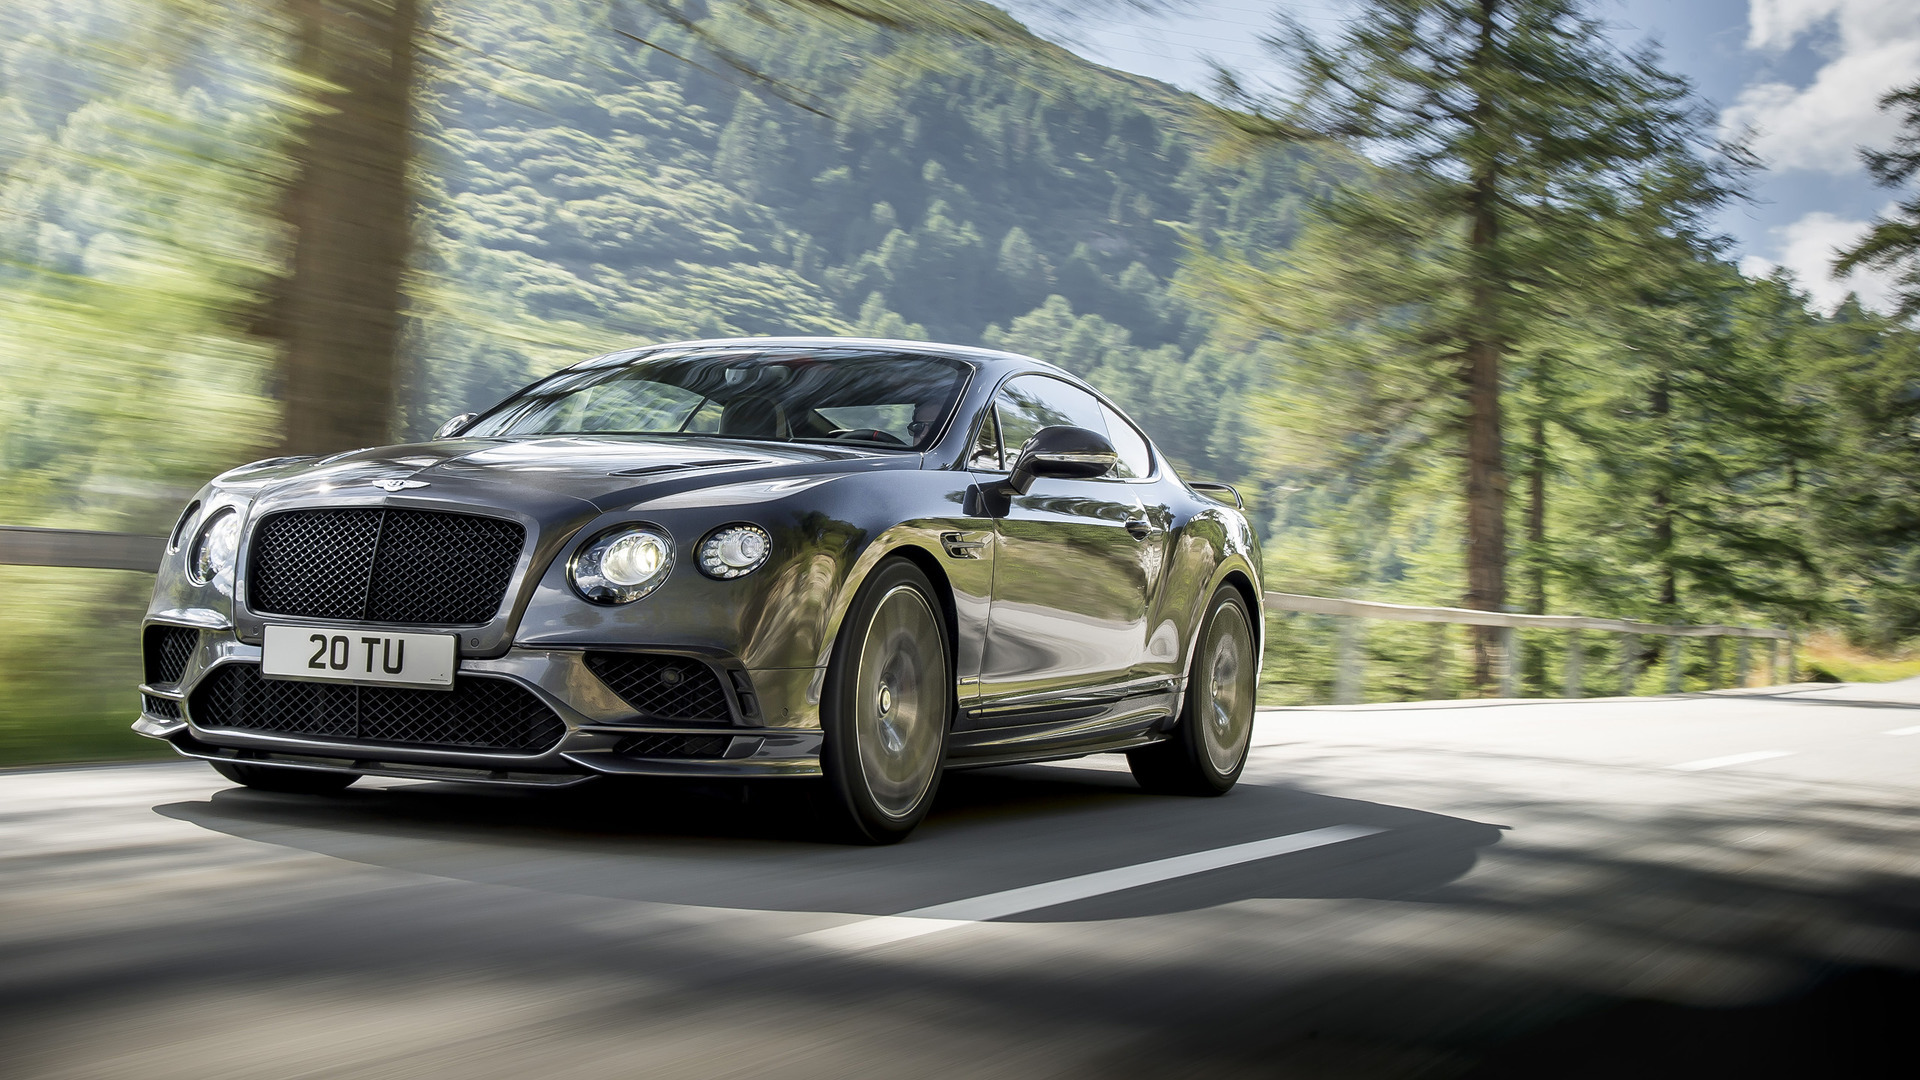 2018-bentley-continental-supersports-image.jpg